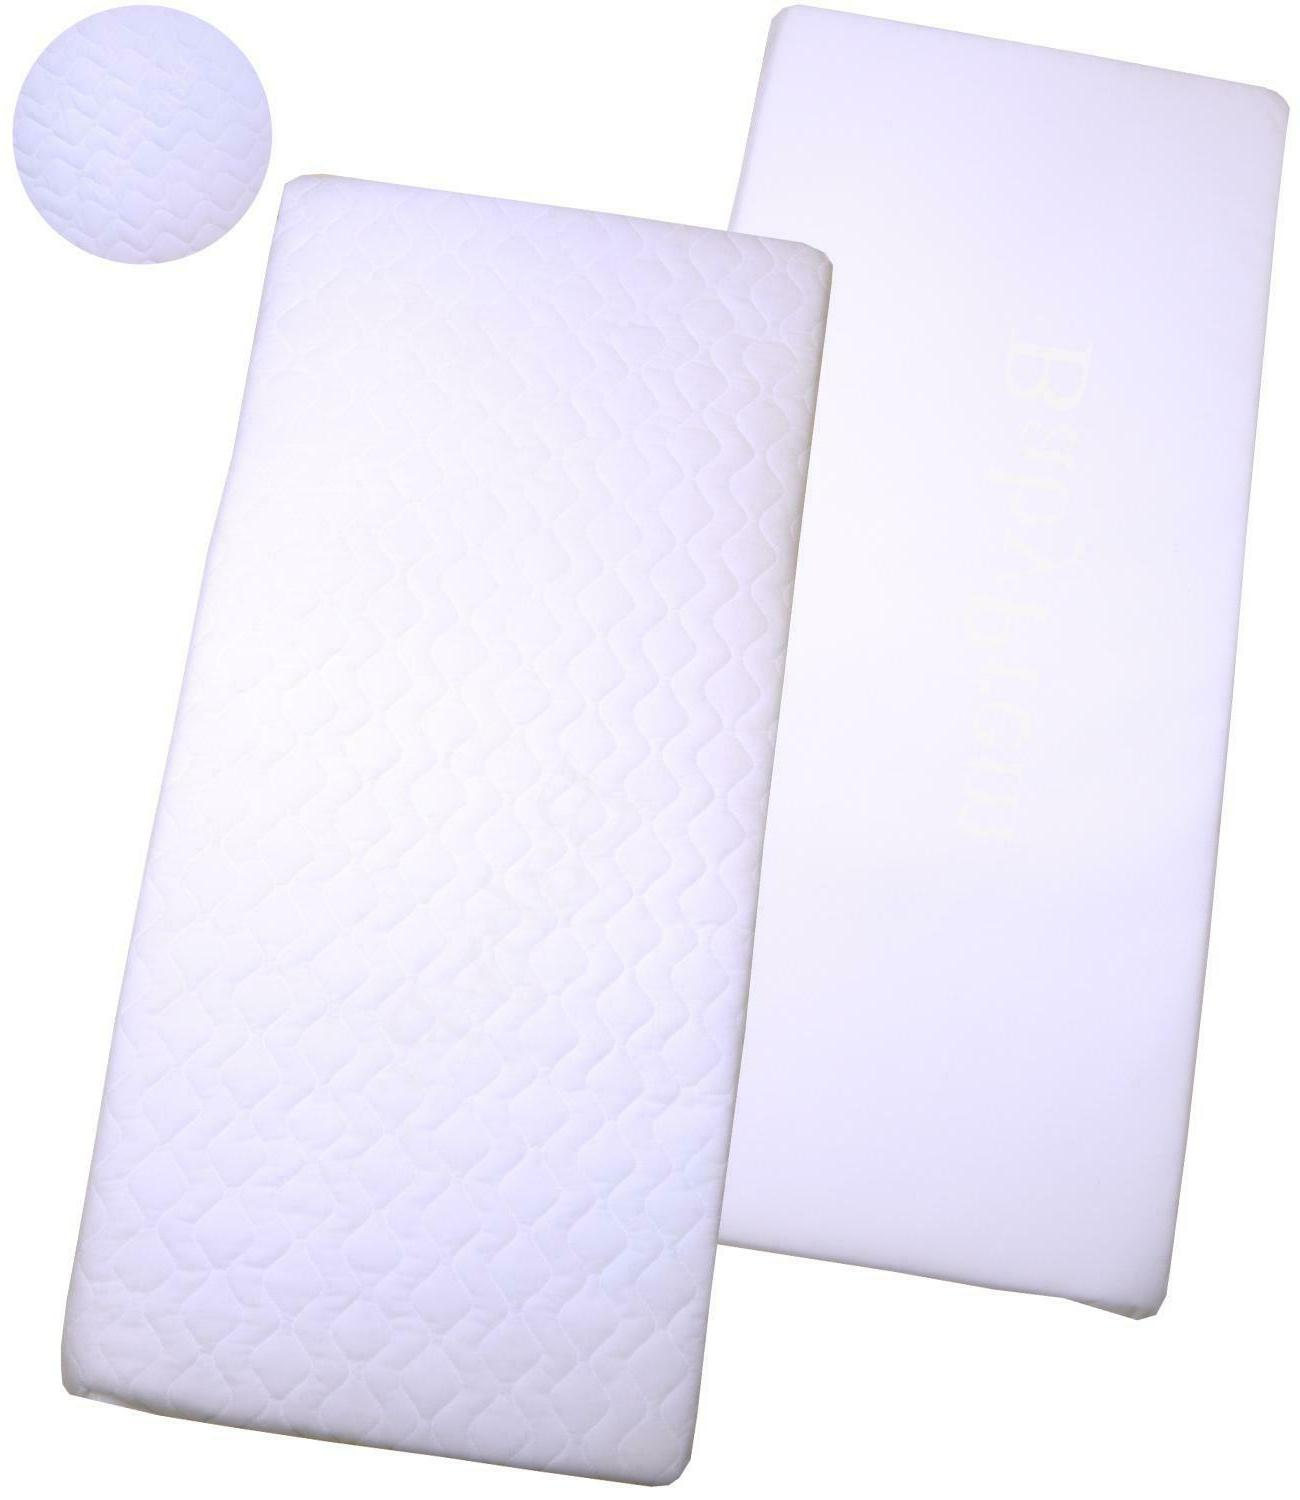 89 x 38cm crib mattress quilted or